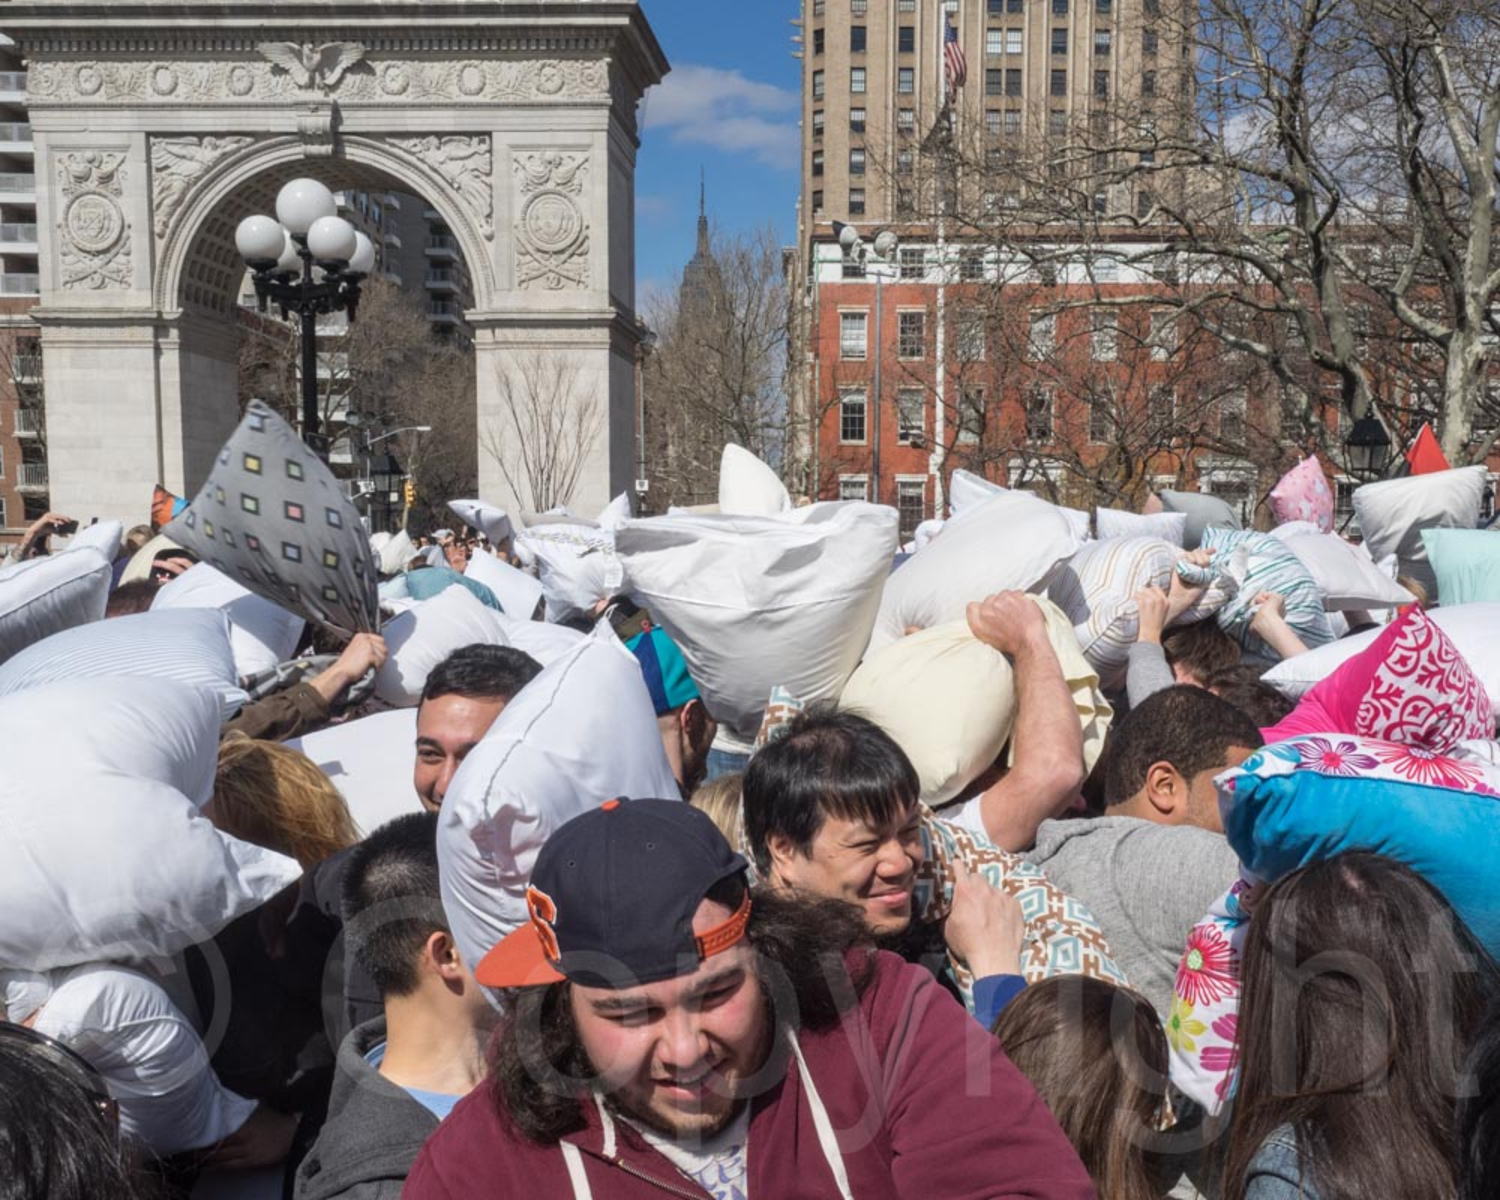 2014 World Pillow Fight Day, Washington Square Park, New York City